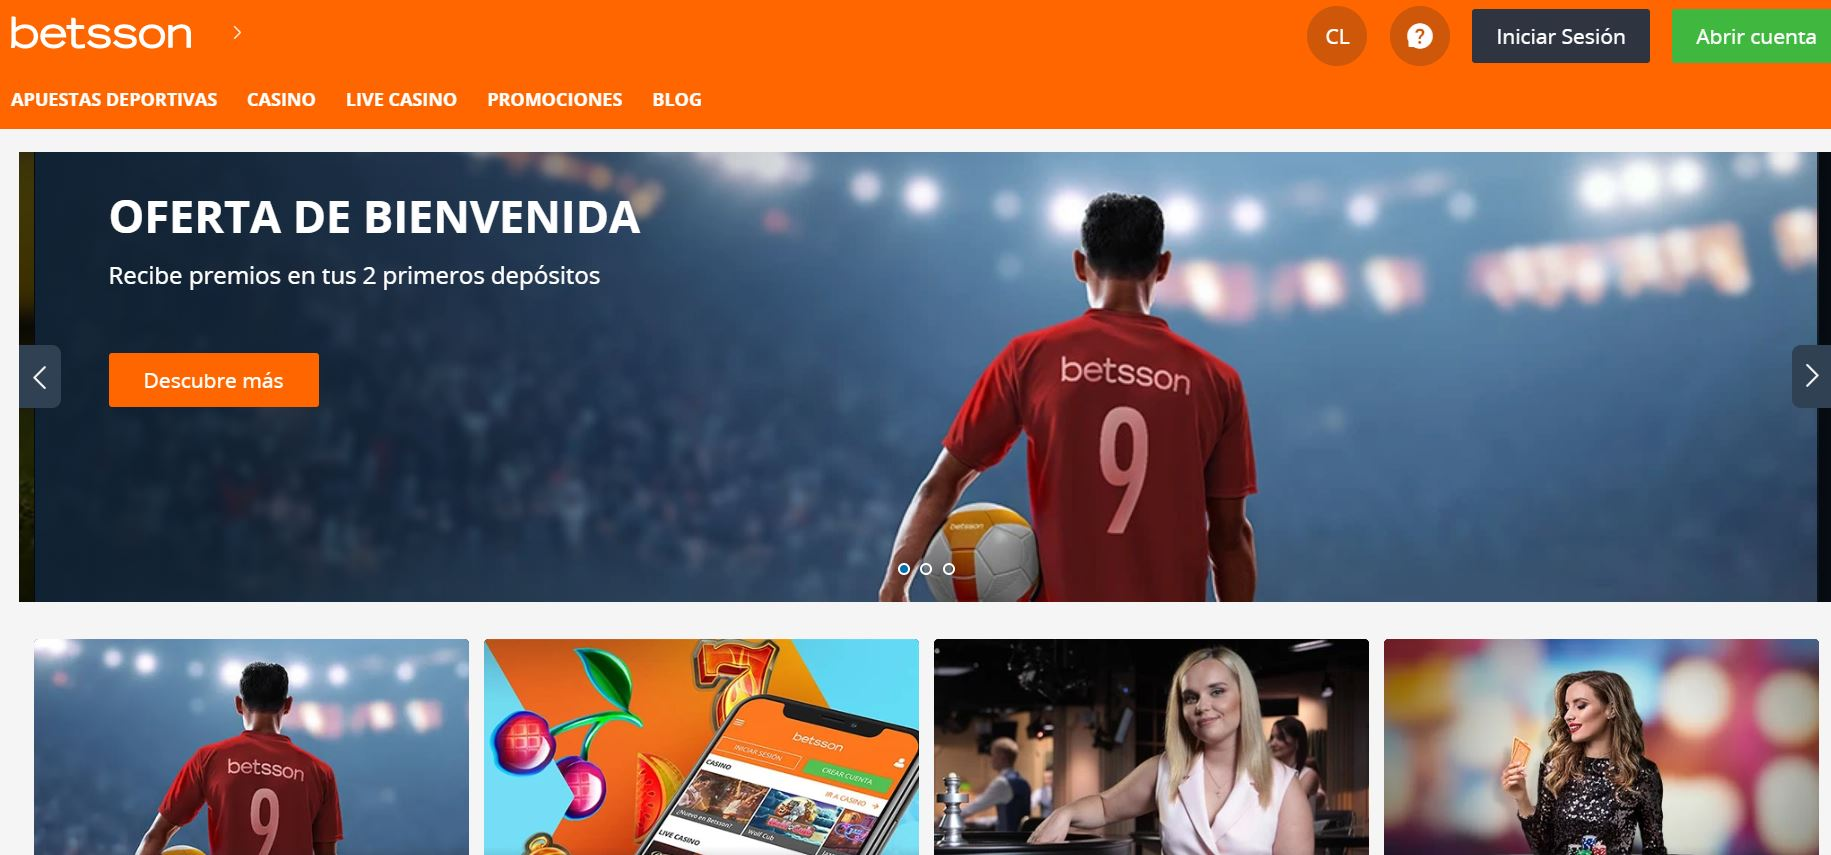 home betsson chile